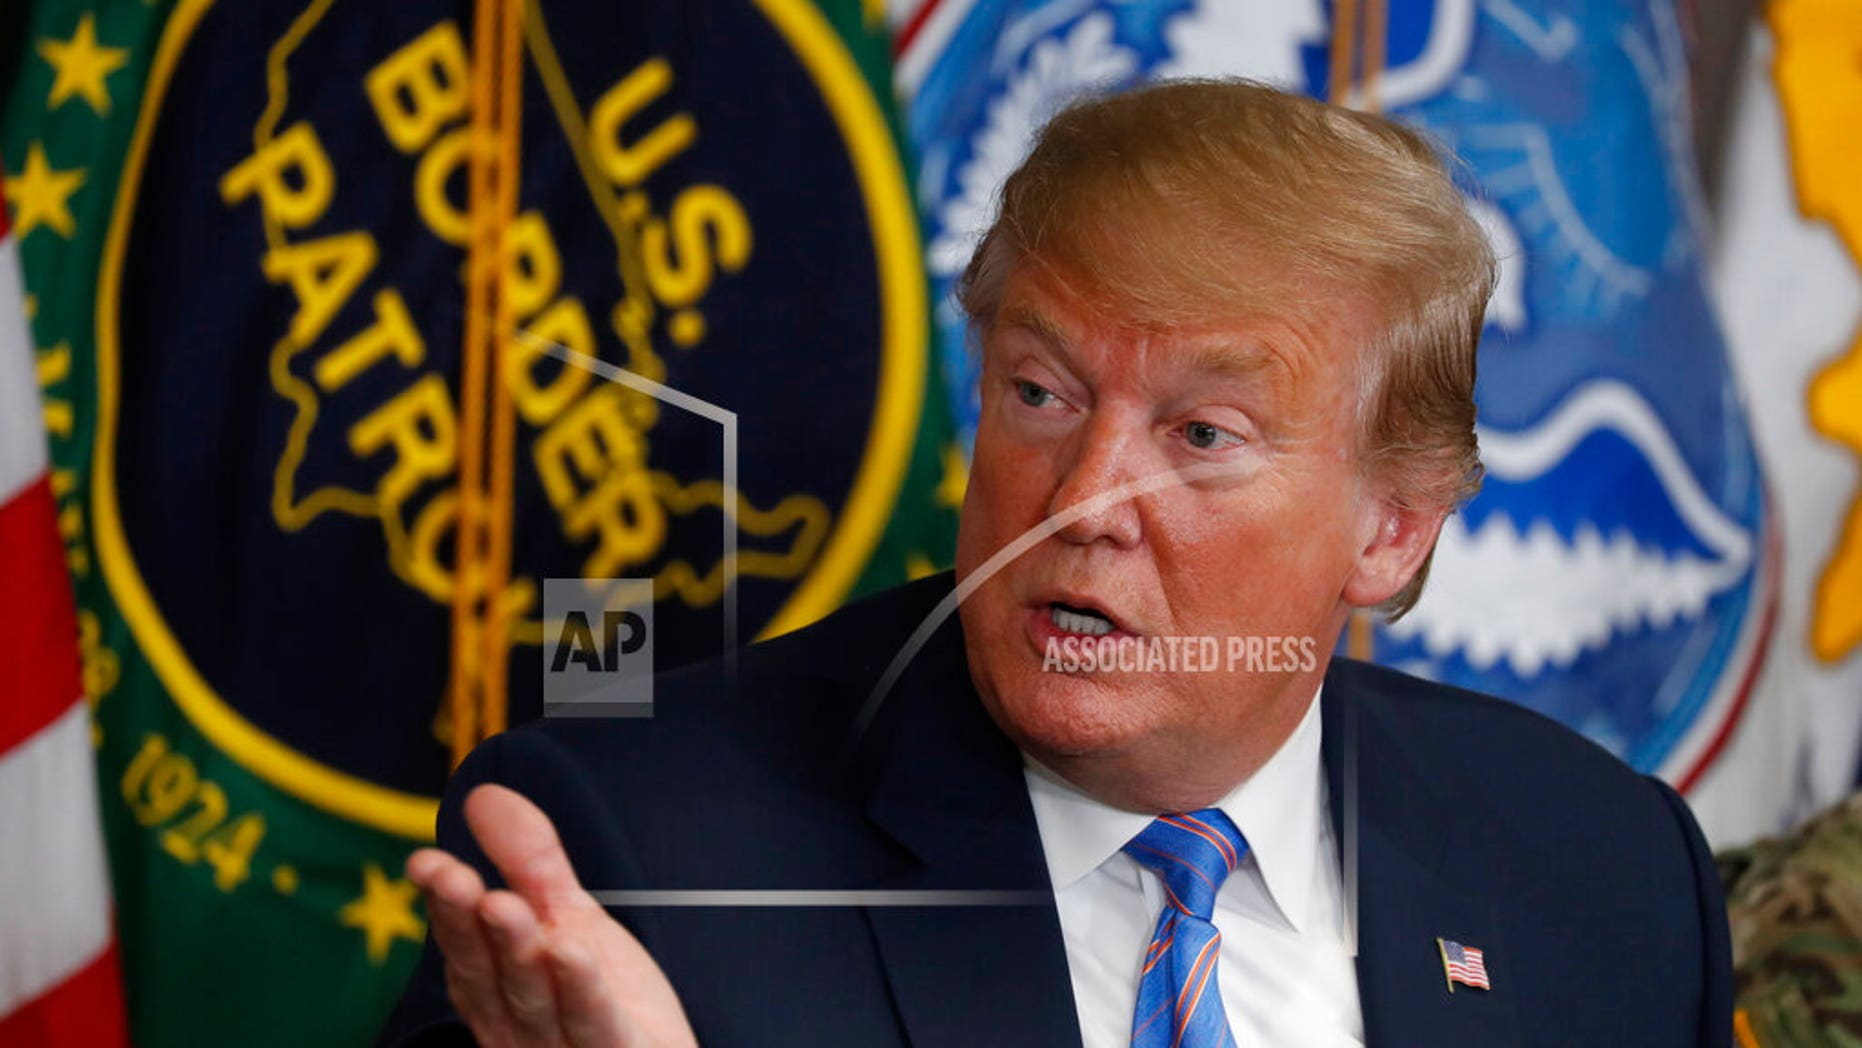 """In this April 5 photo, President Donald Trump participates in a roundtable on immigration and border security at the U.S. Border Patrol Calexico Station in Calexico, Calif. Trump said Friday he is considering sending """"Illegal Immigrants"""" to Democratic strongholds to punish them for inaction. (AP Photo/Jacquelyn Martin)"""